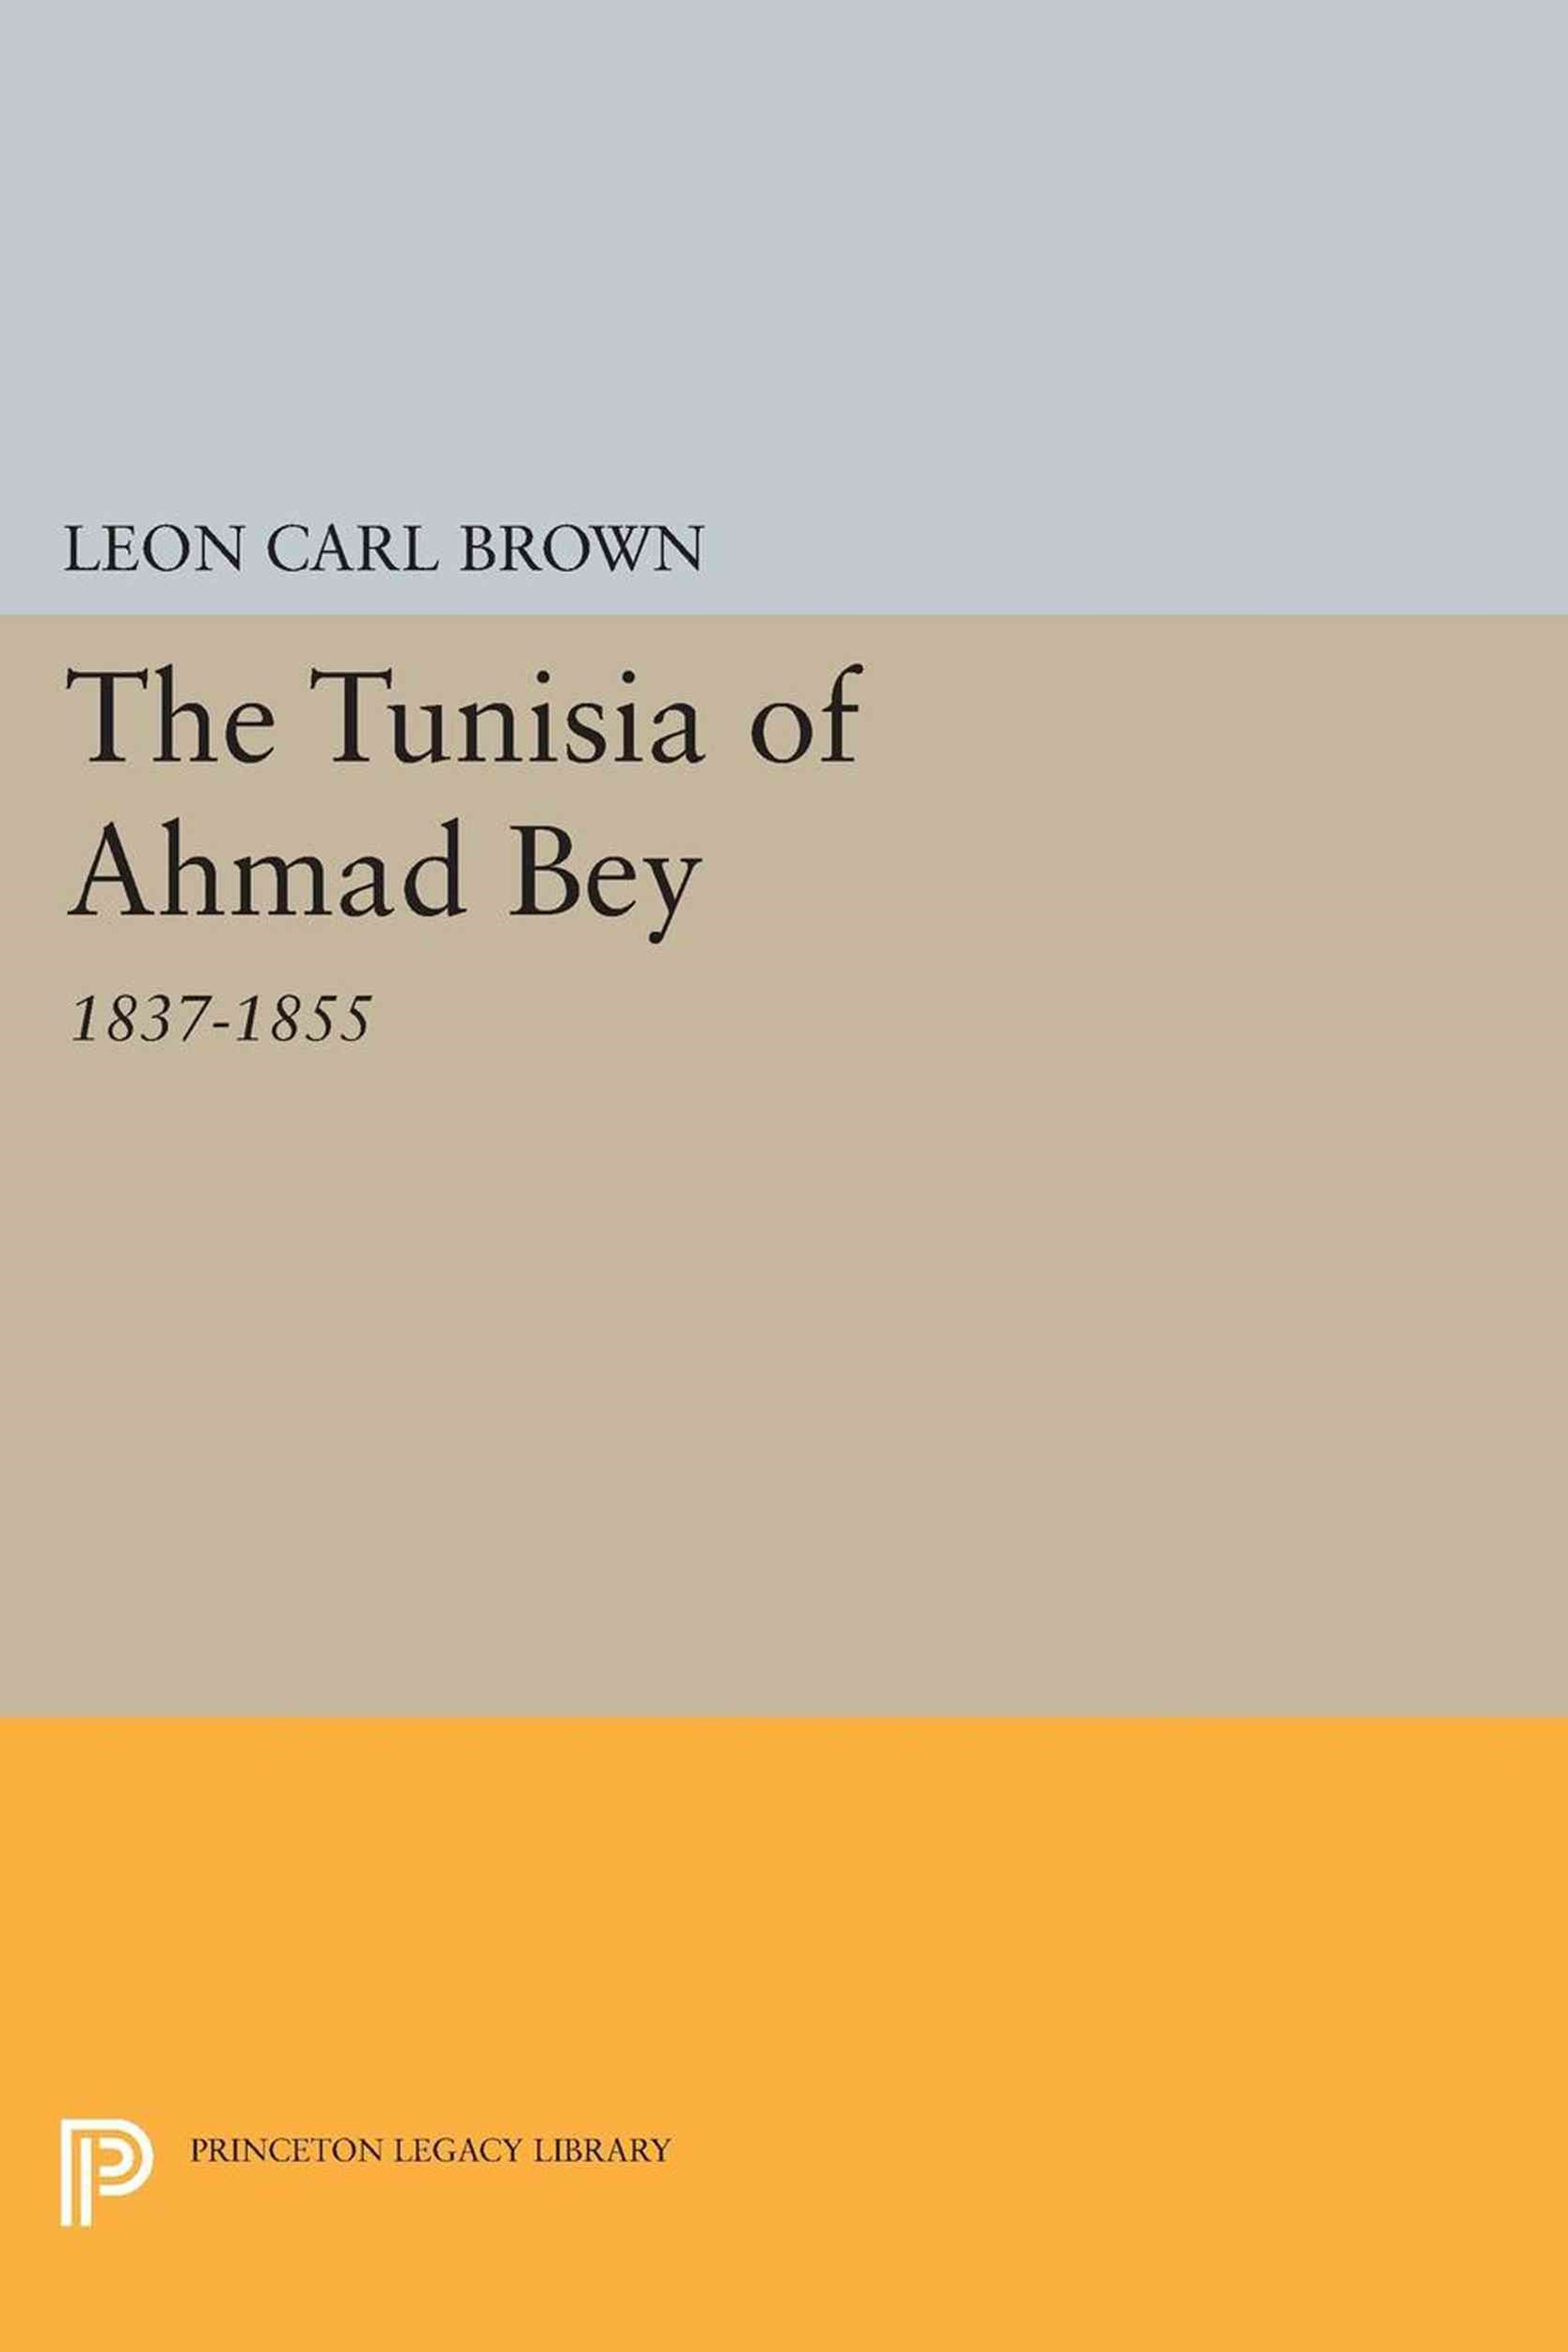 The Tunisia of Ahmad Bey, 1837-1855